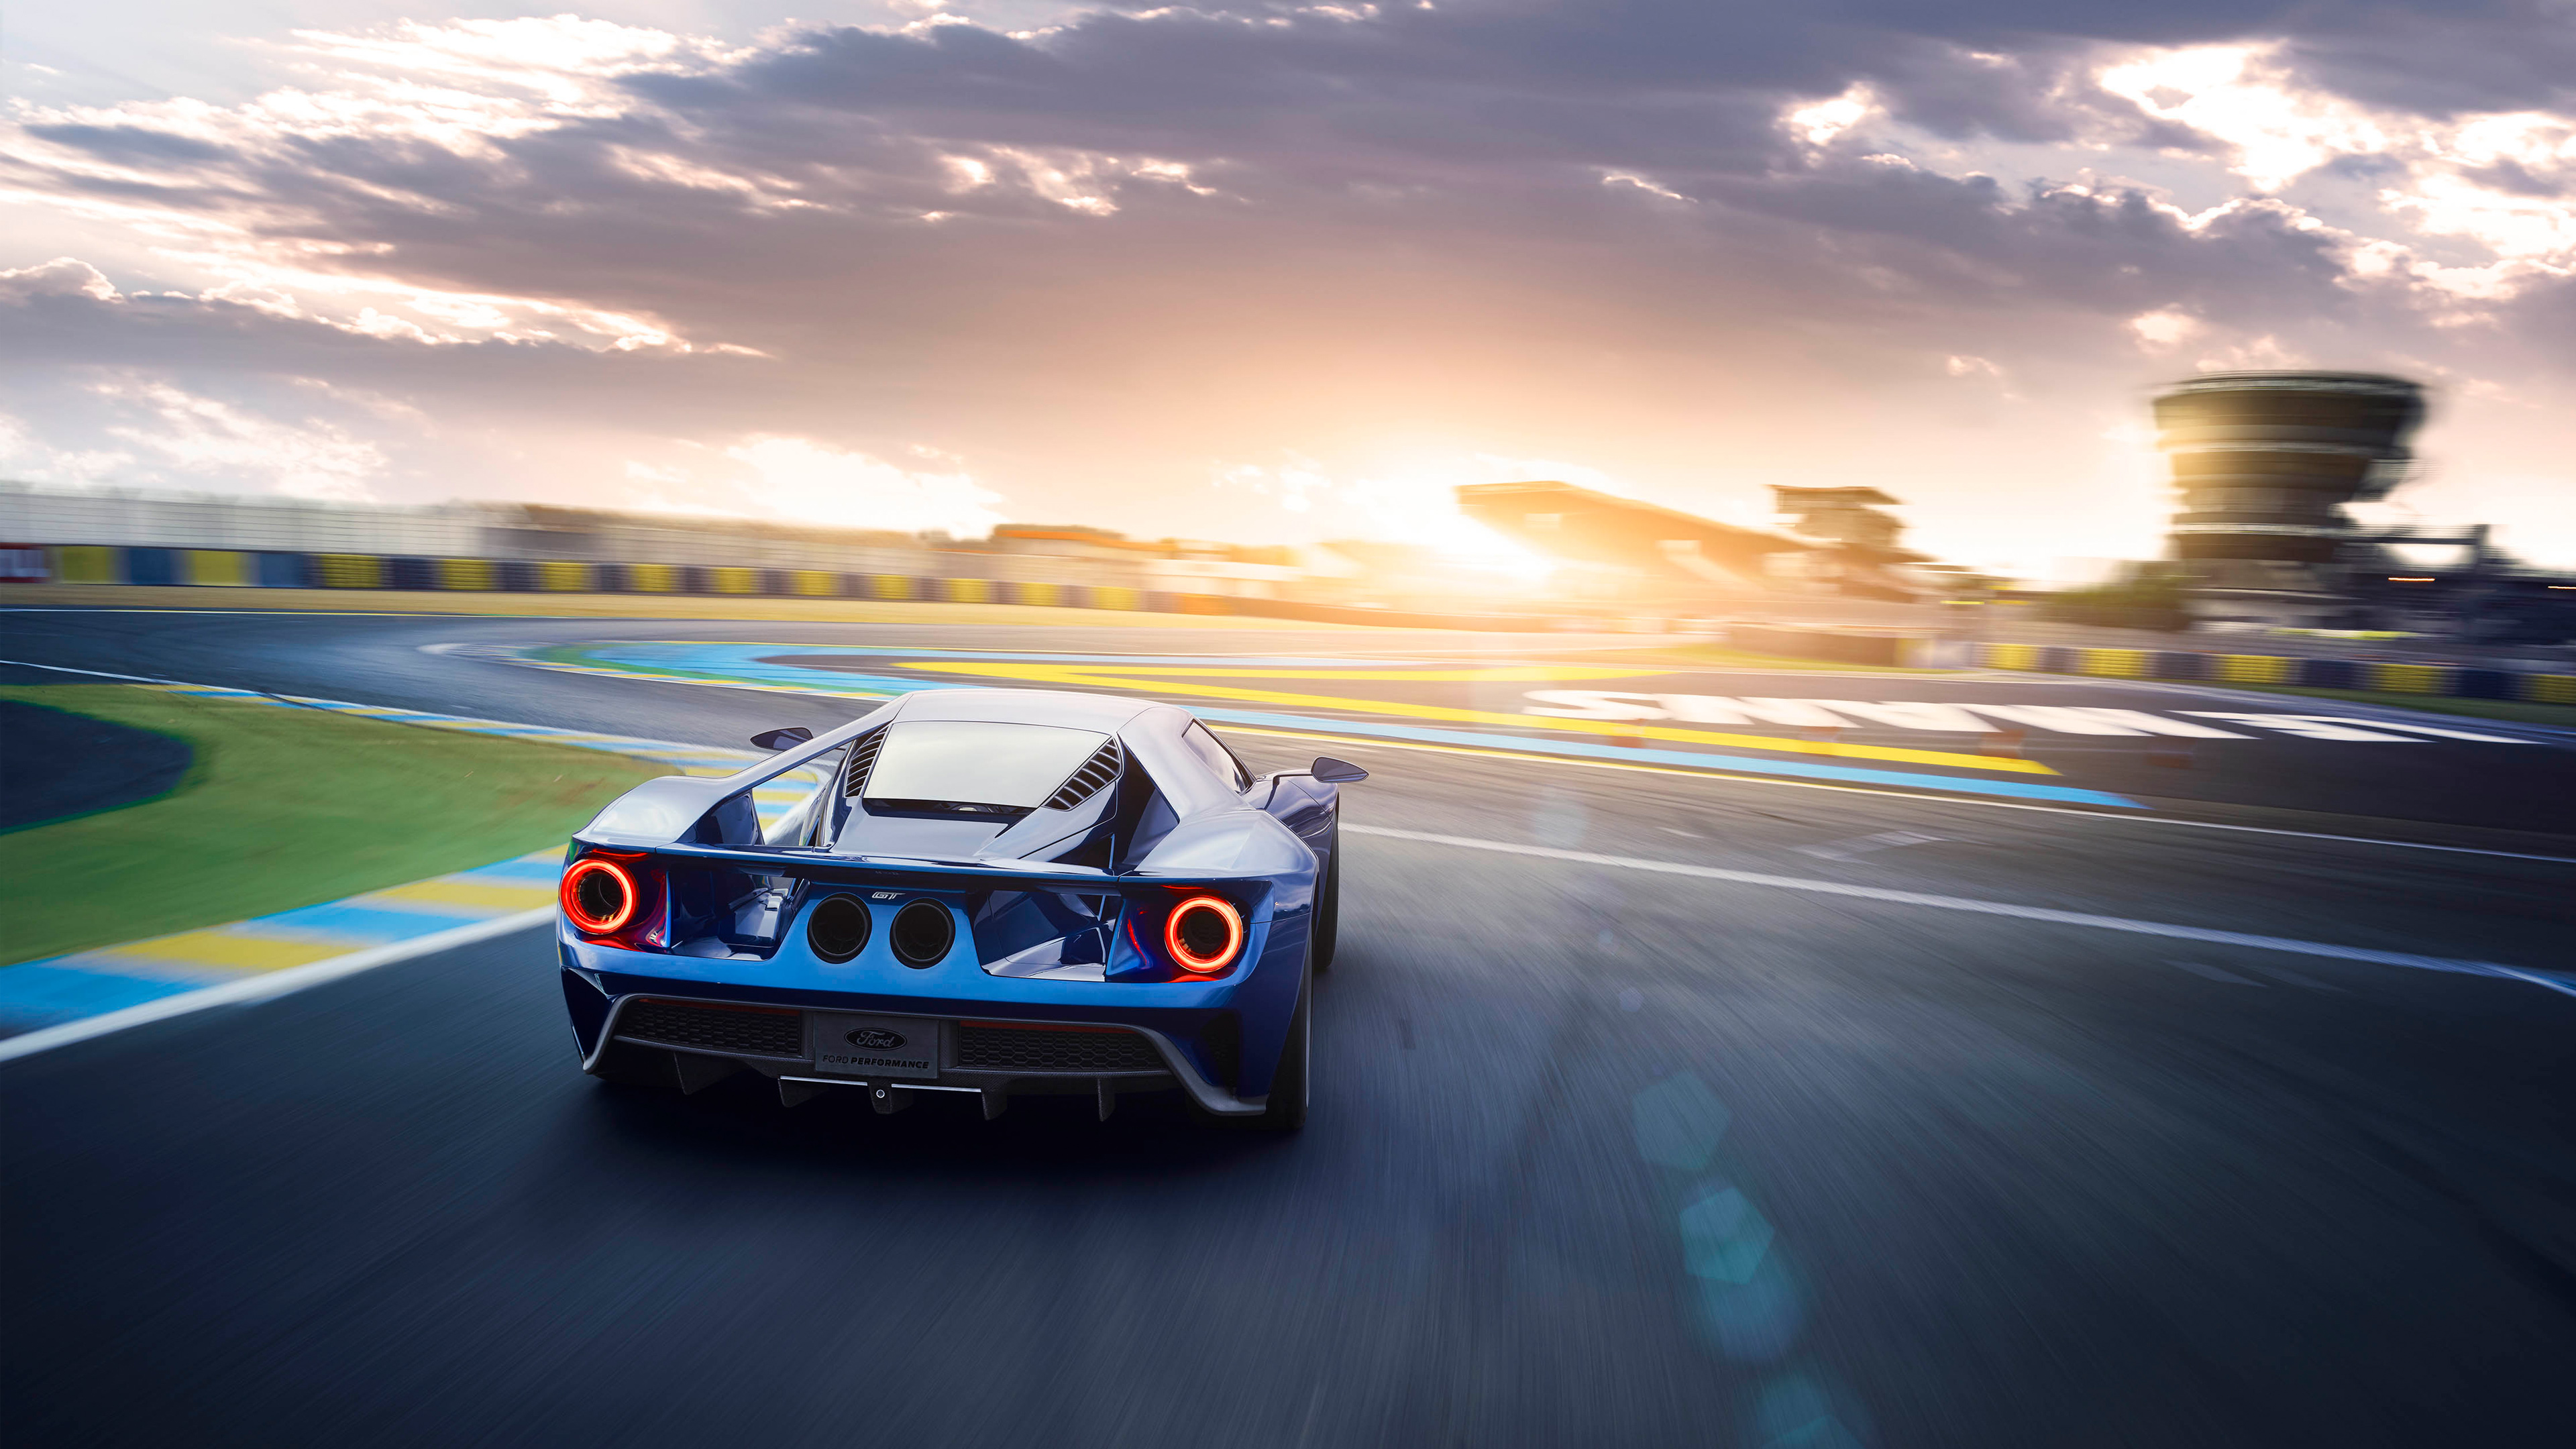 2017 Ford Gt Rear Wallpaper Hd Car Wallpapers | 2017 - 2018 Best Cars ...